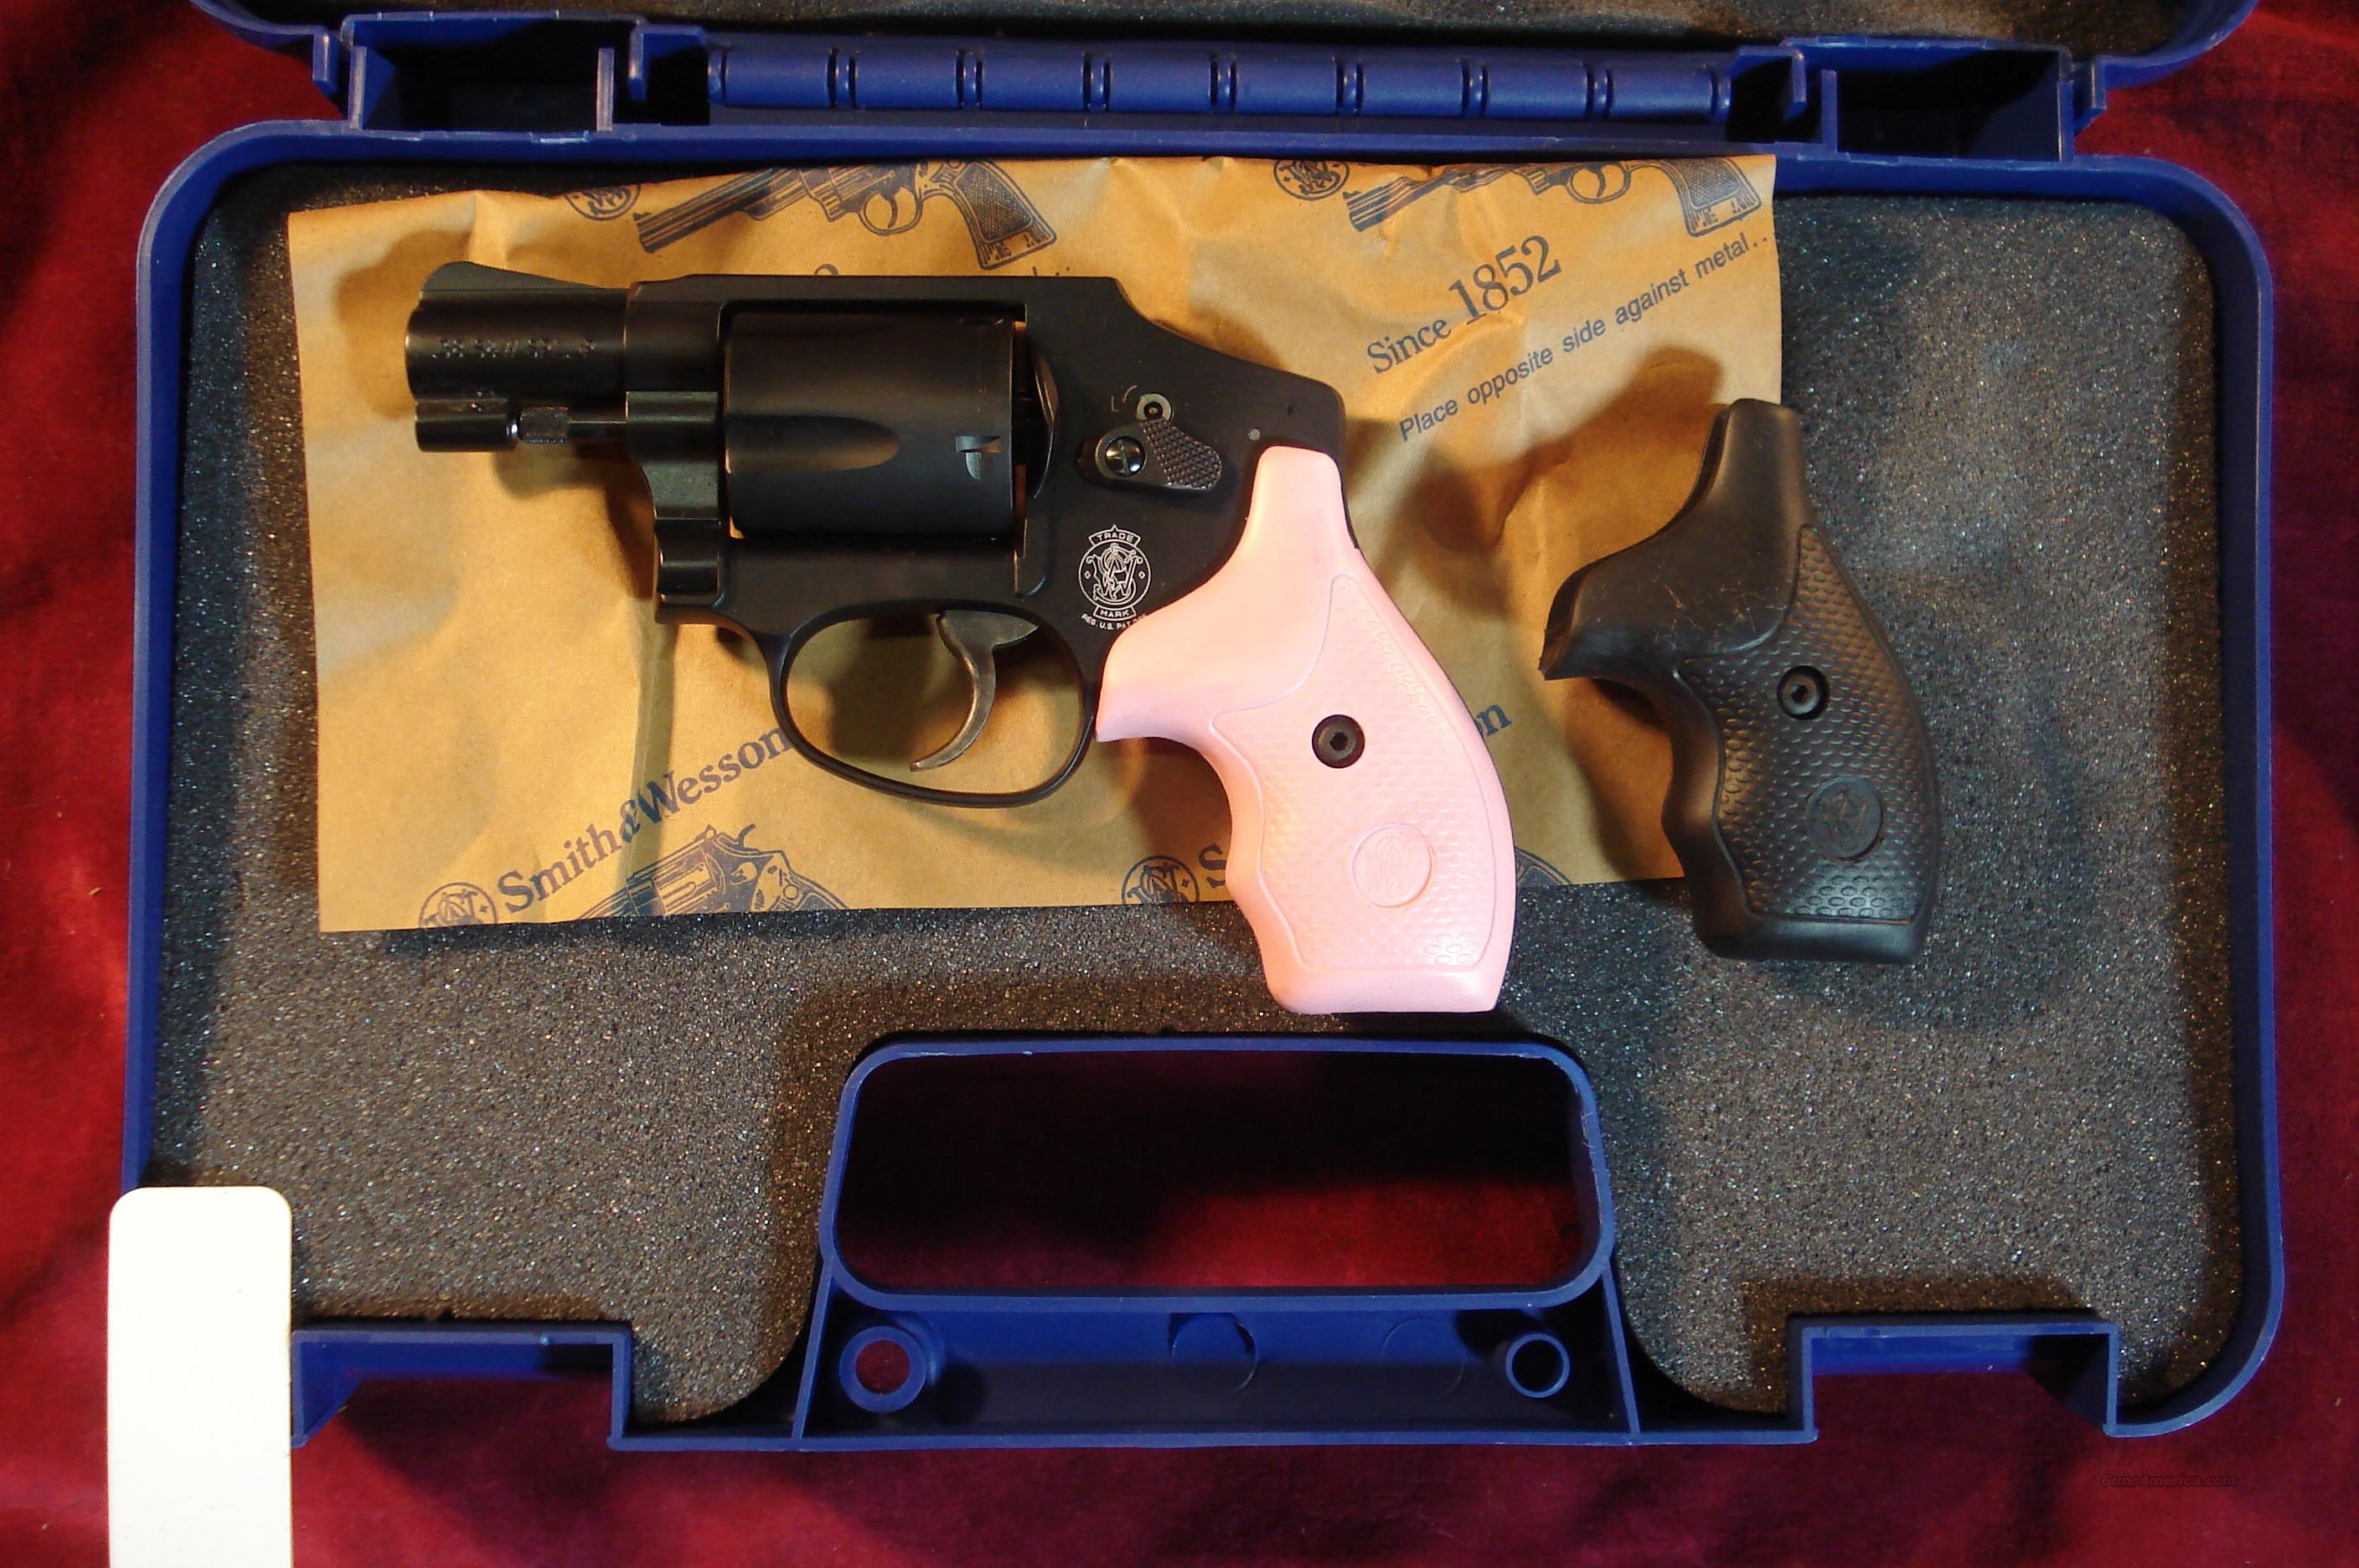 SMITH AND WESSON 442, 38+P CALIBER W/PINK & BLACK GRIPS NEW   (150469)   Guns > Pistols > Smith & Wesson Revolvers > Pocket Pistols